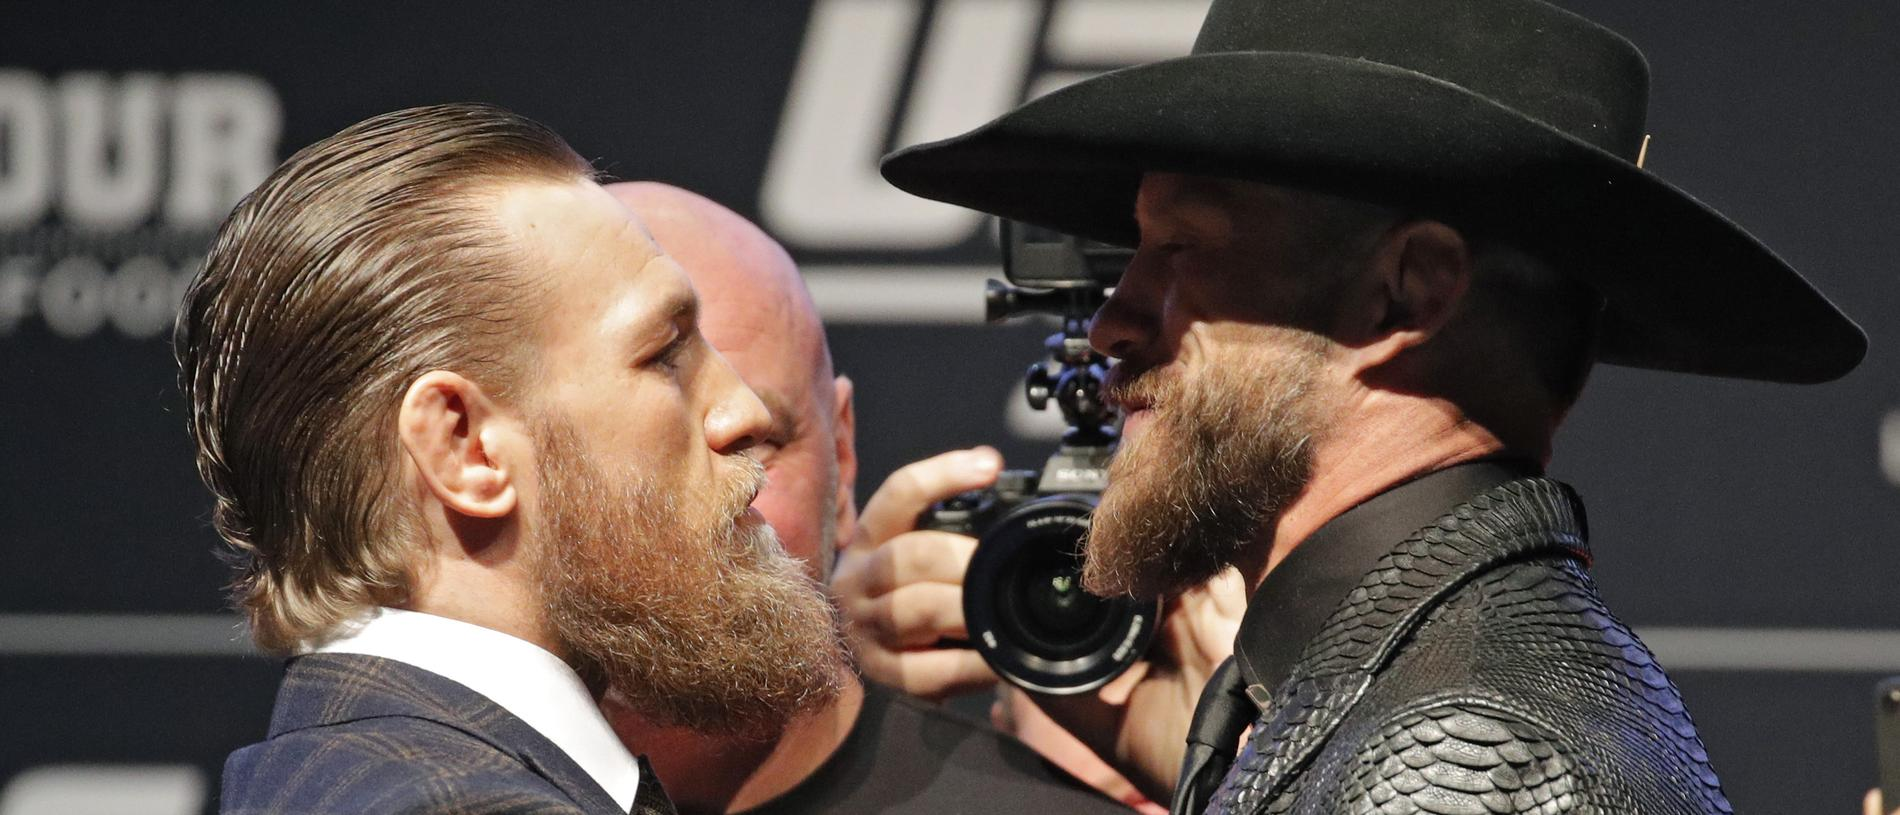 """Conor McGregor, left, and Donald """"Cowboy"""" Cerrone pose for photographers during a news conference for a UFC 246 mixed martial arts bout, Wednesday, Jan. 15, 2020, in Las Vegas. The two are scheduled to fight in a welterweight bout Saturday. (AP Photo/John Locher)"""